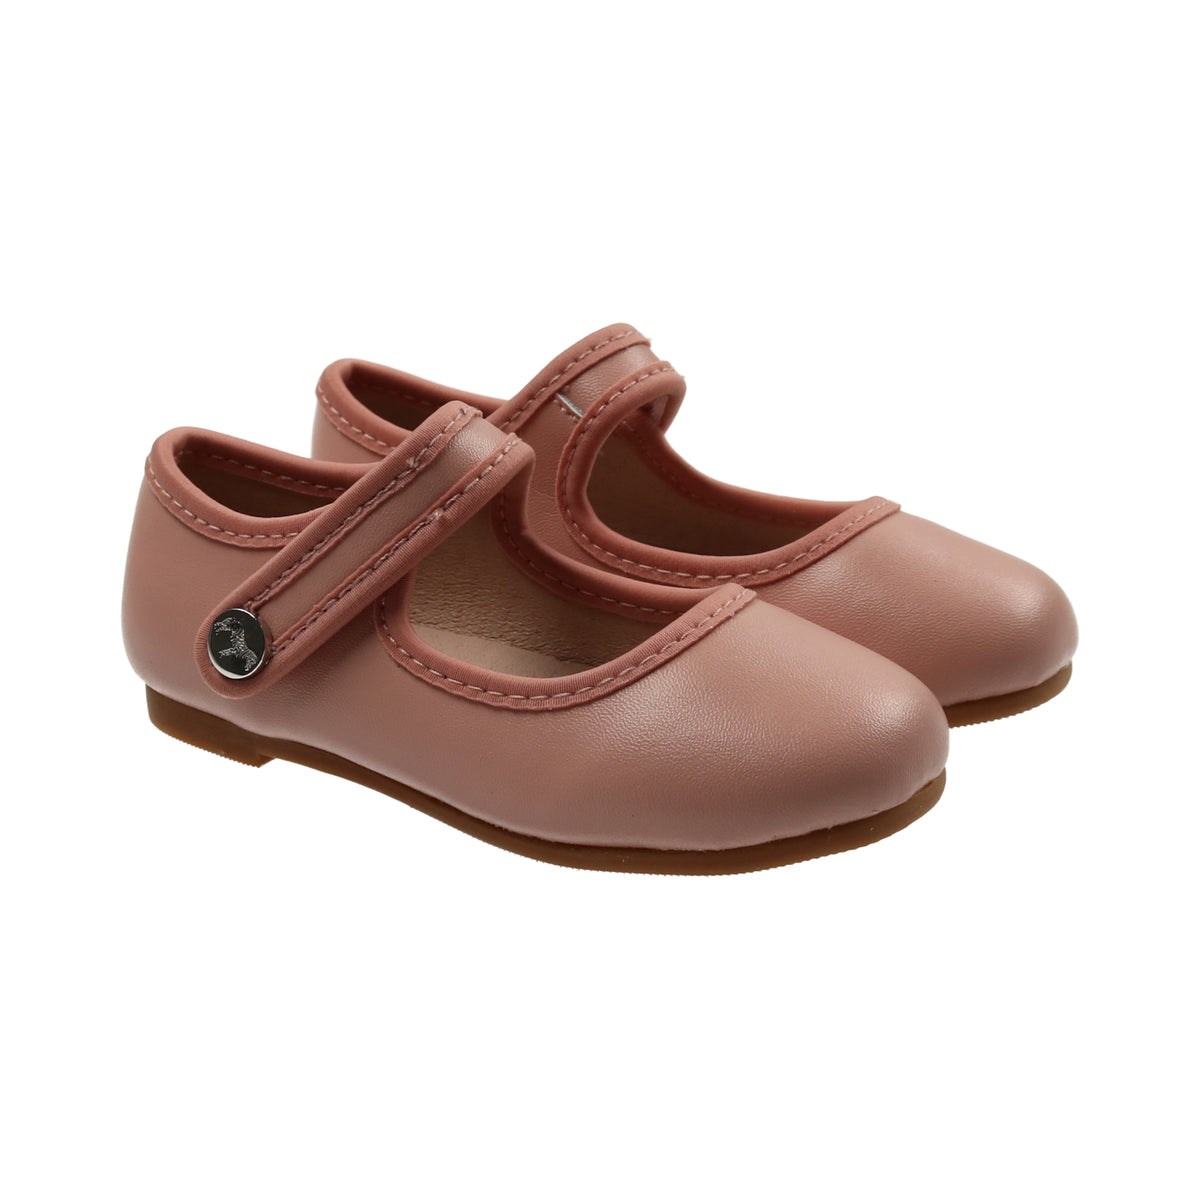 Peony Classic Mary Jane Hard Sole